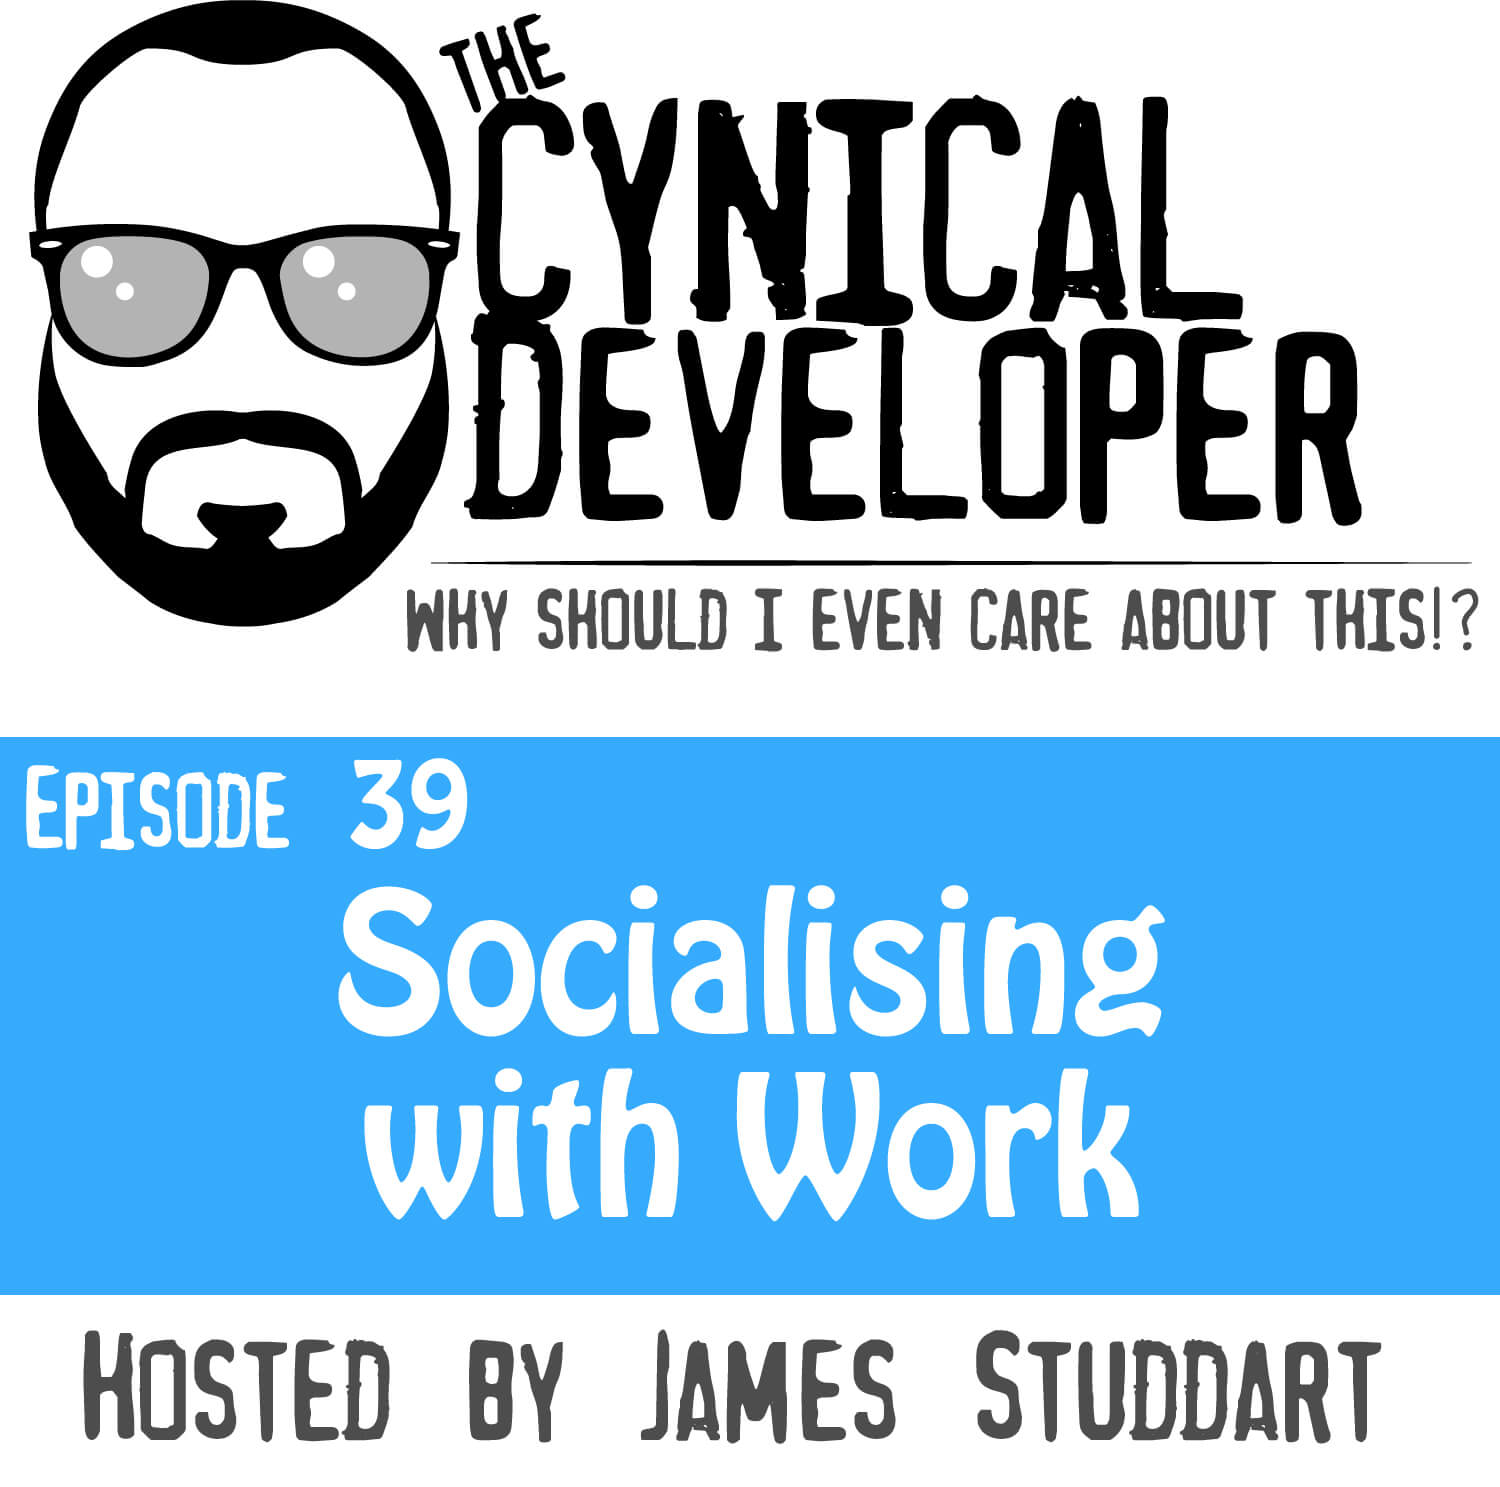 Episode 39 - Socialising with Work